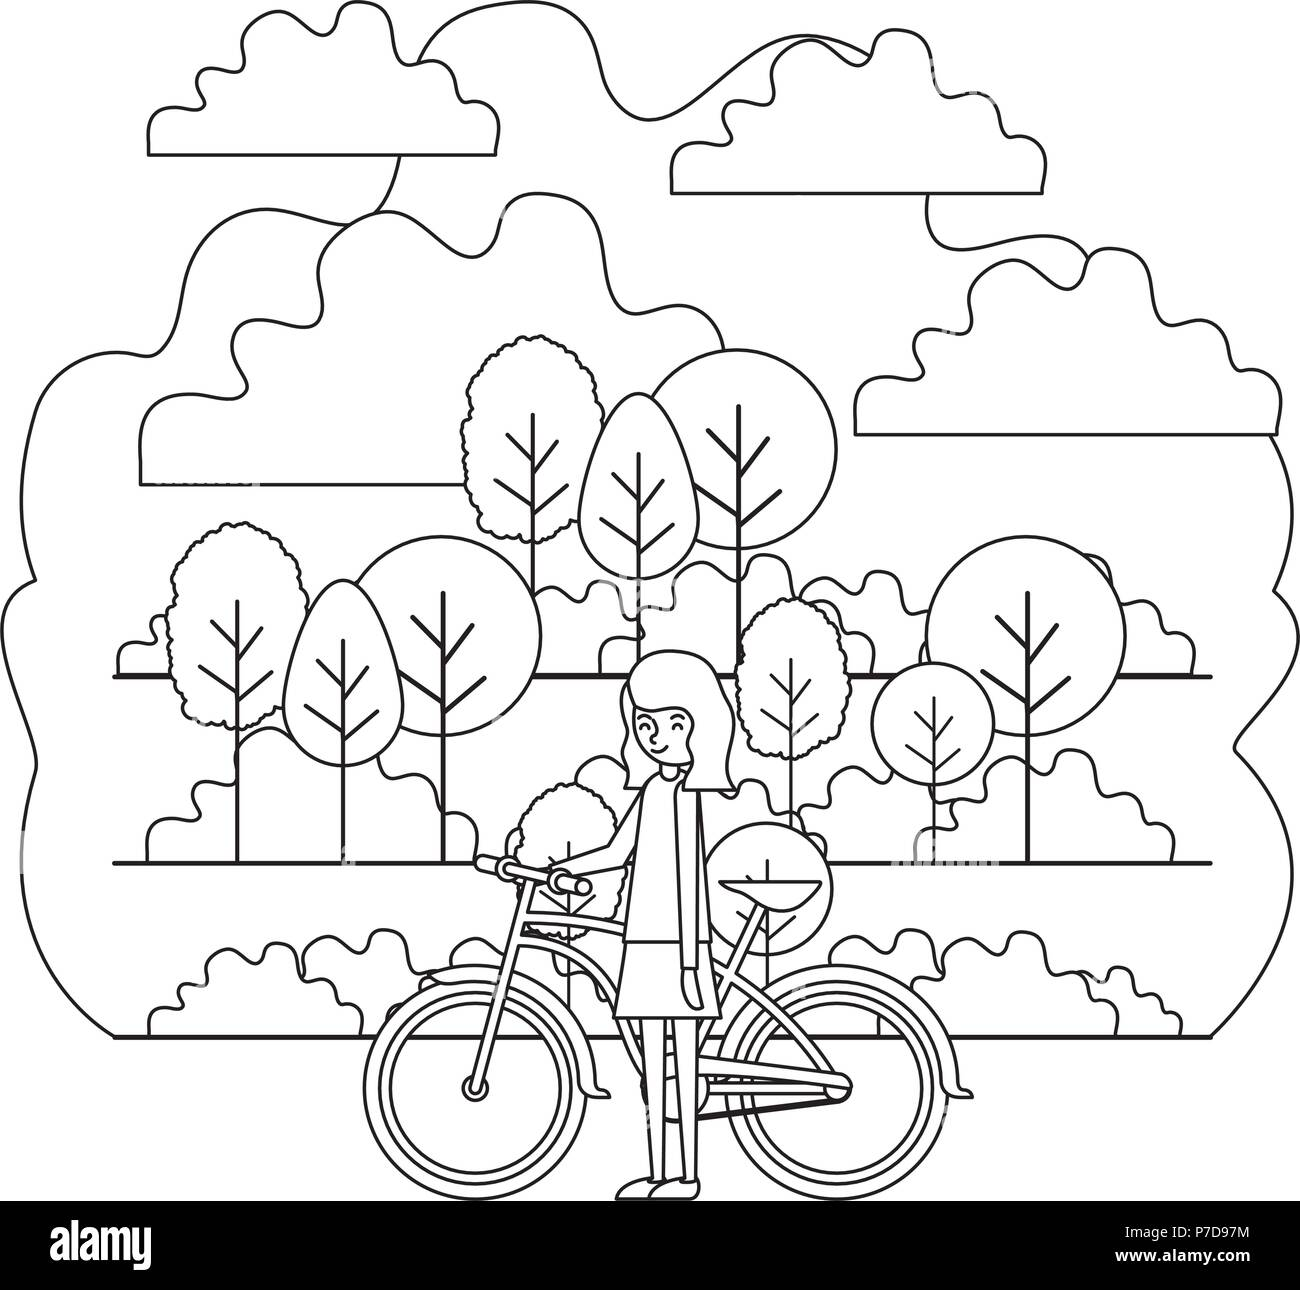 woman with bike black and white stock photos images alamy Easy Rider Chopper woman in the park with bicycle stock image